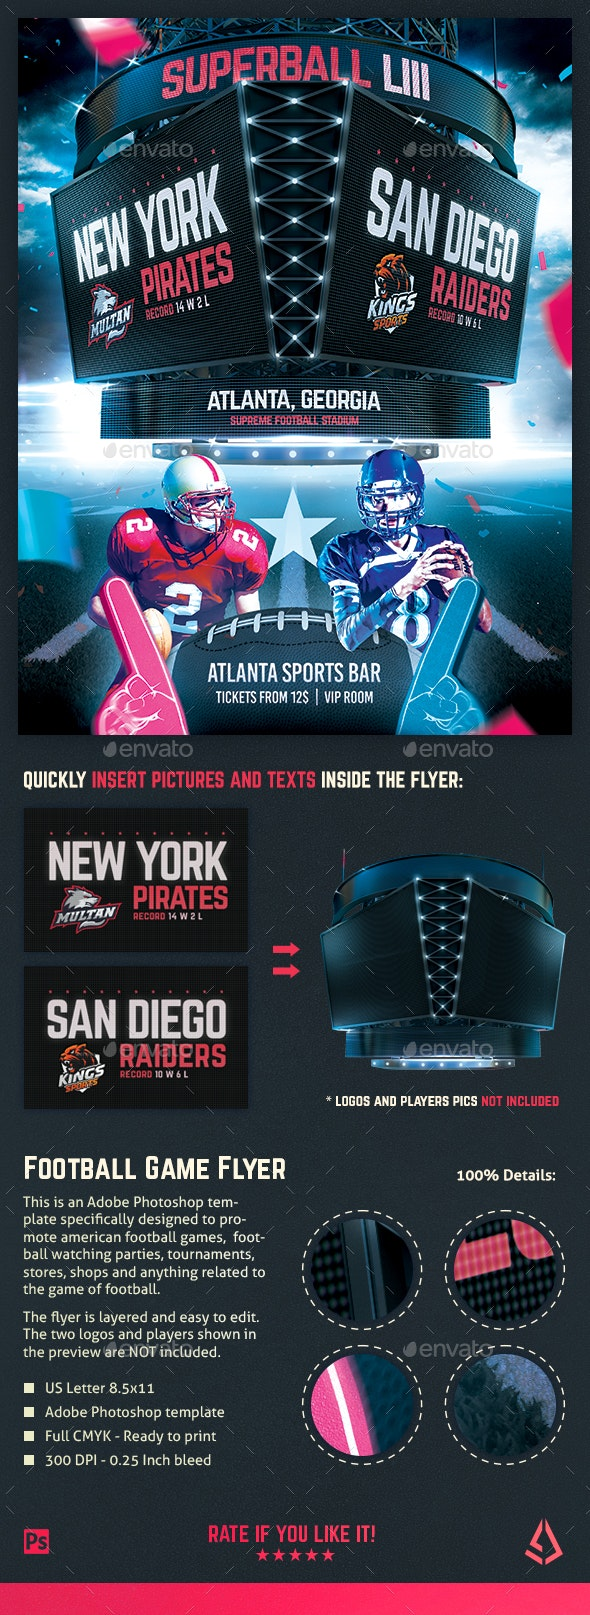 American Football Superball Flyer College Match Template - Sports Events